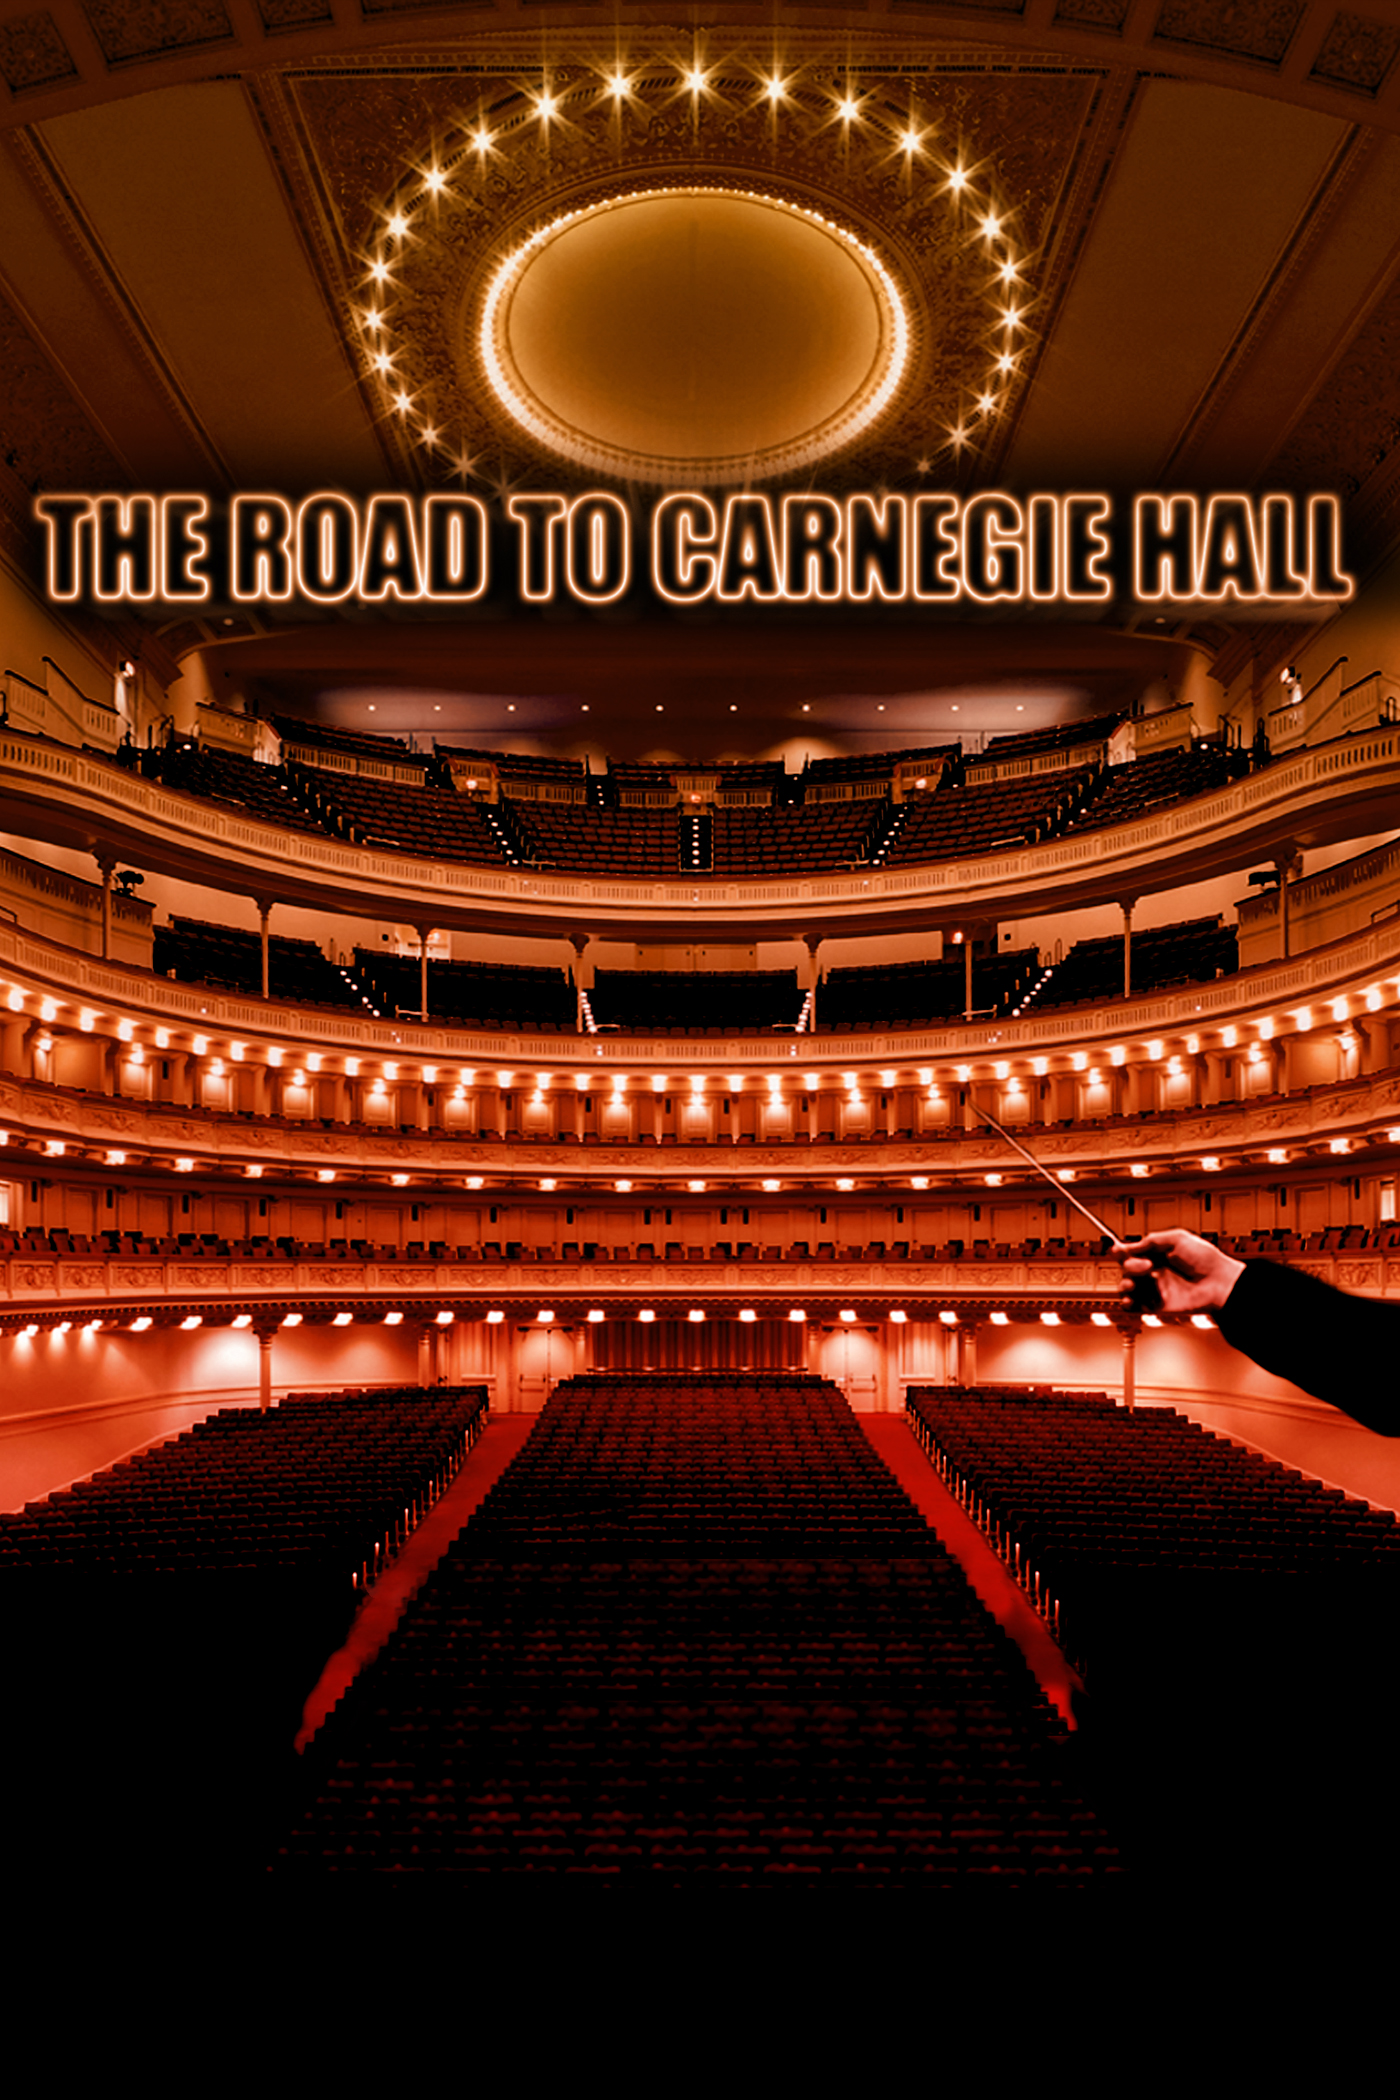 New Video Sewing Tutorial Series: Road To Carnegie Hall